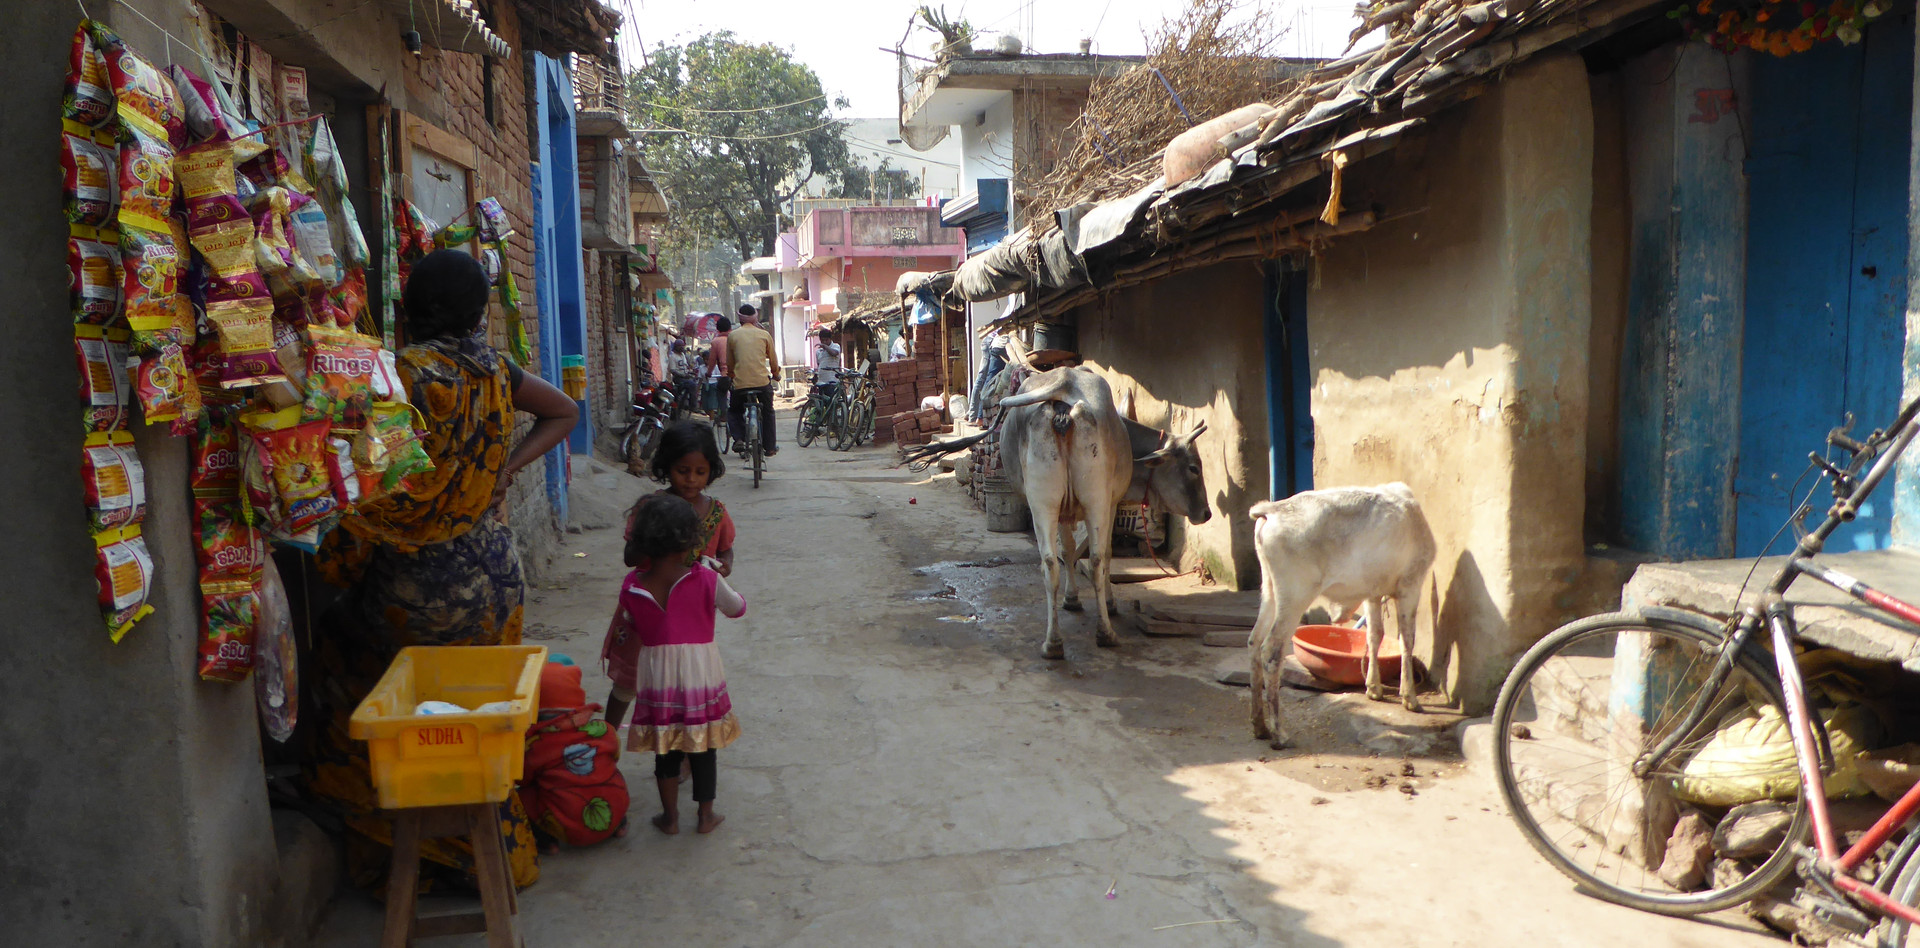 A little side street in Bodhgaya